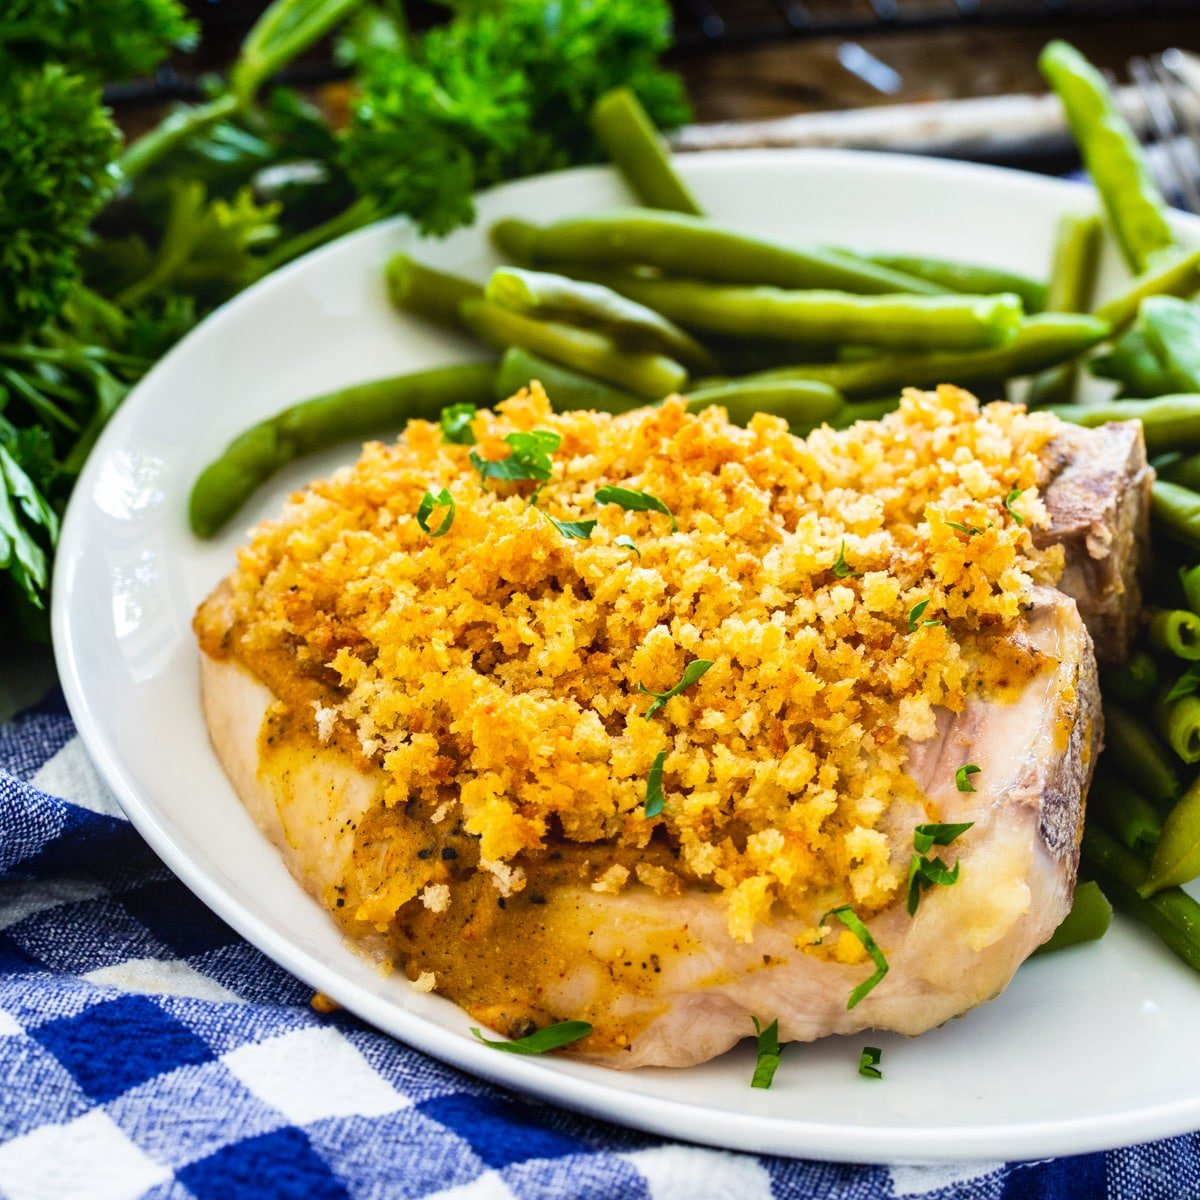 Deviled Pork Chops on a plate with green beans.